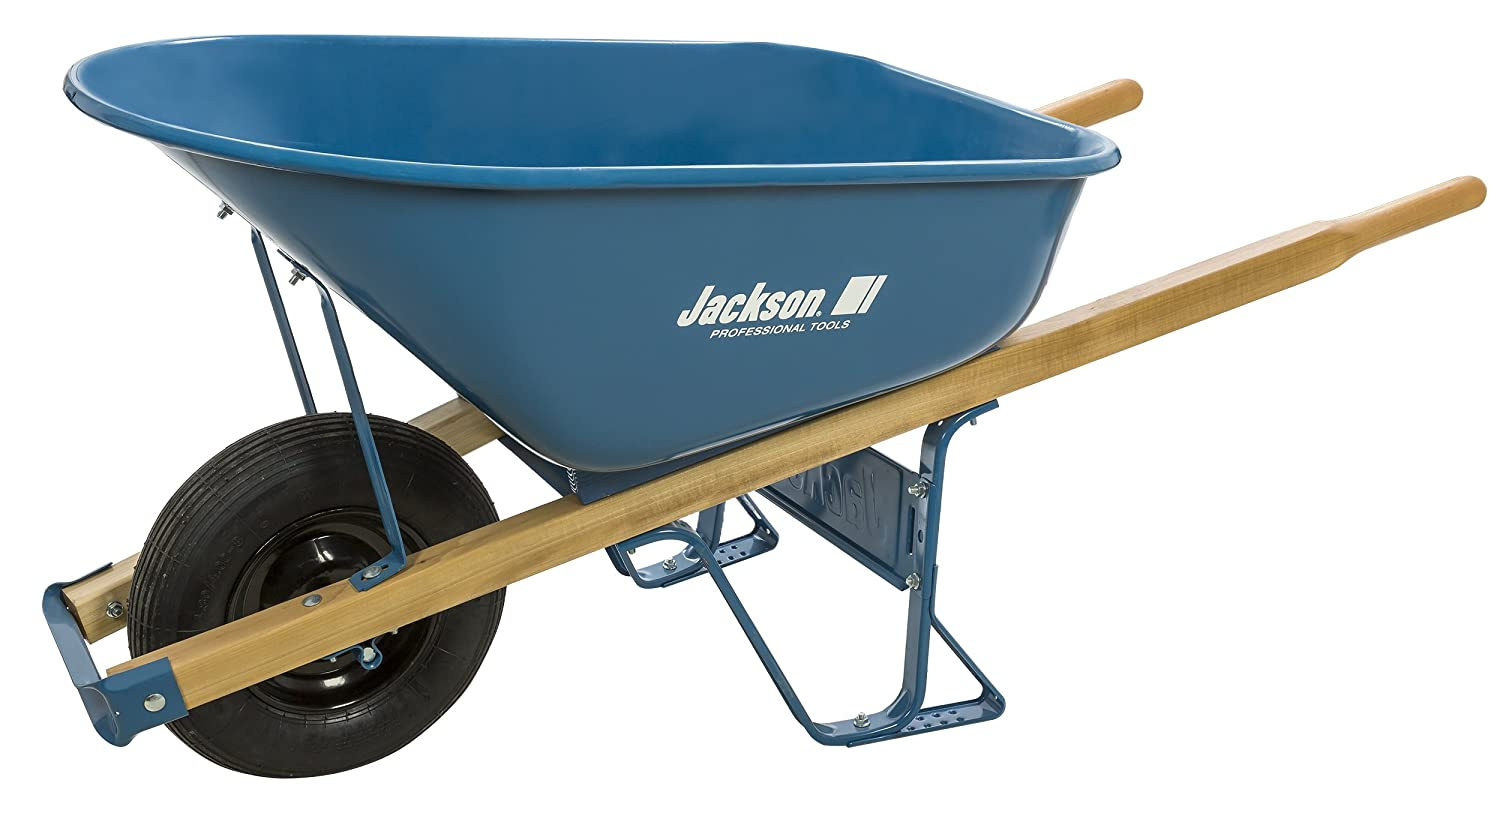 Image result for jackson wheelbarrow